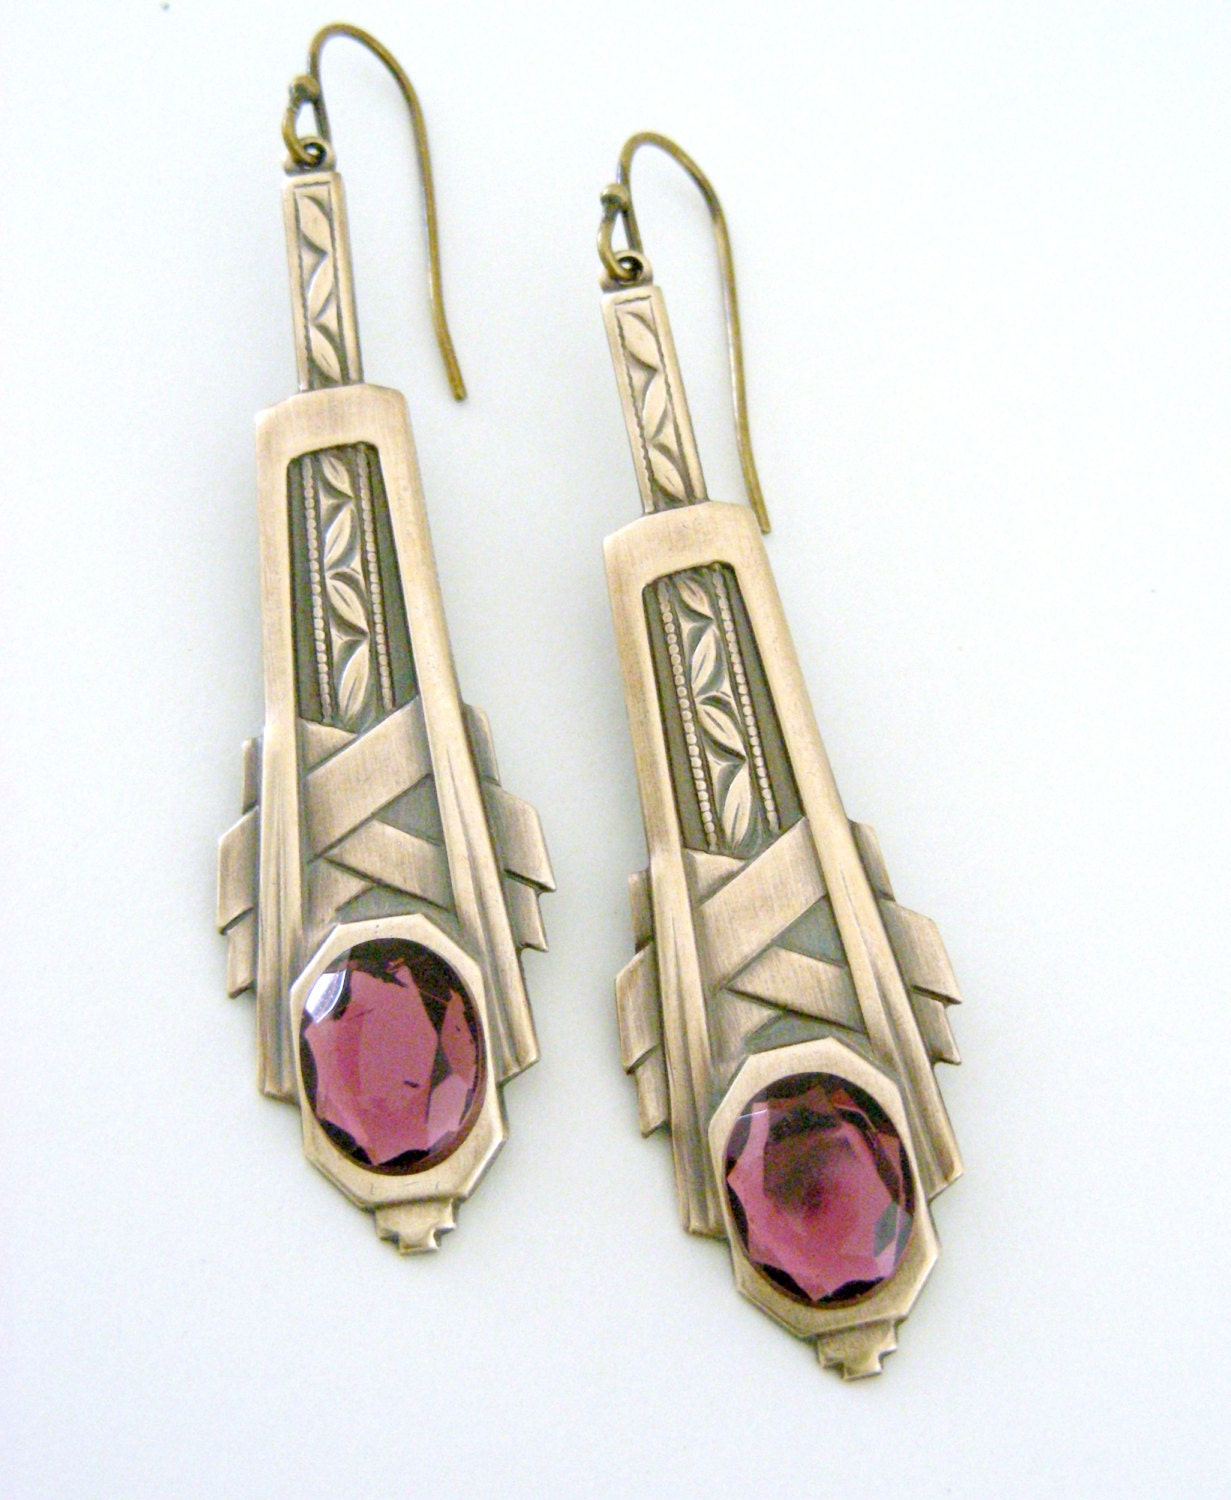 Vintage Earrings Art Deco Earrings Vintage Brass Jewelry